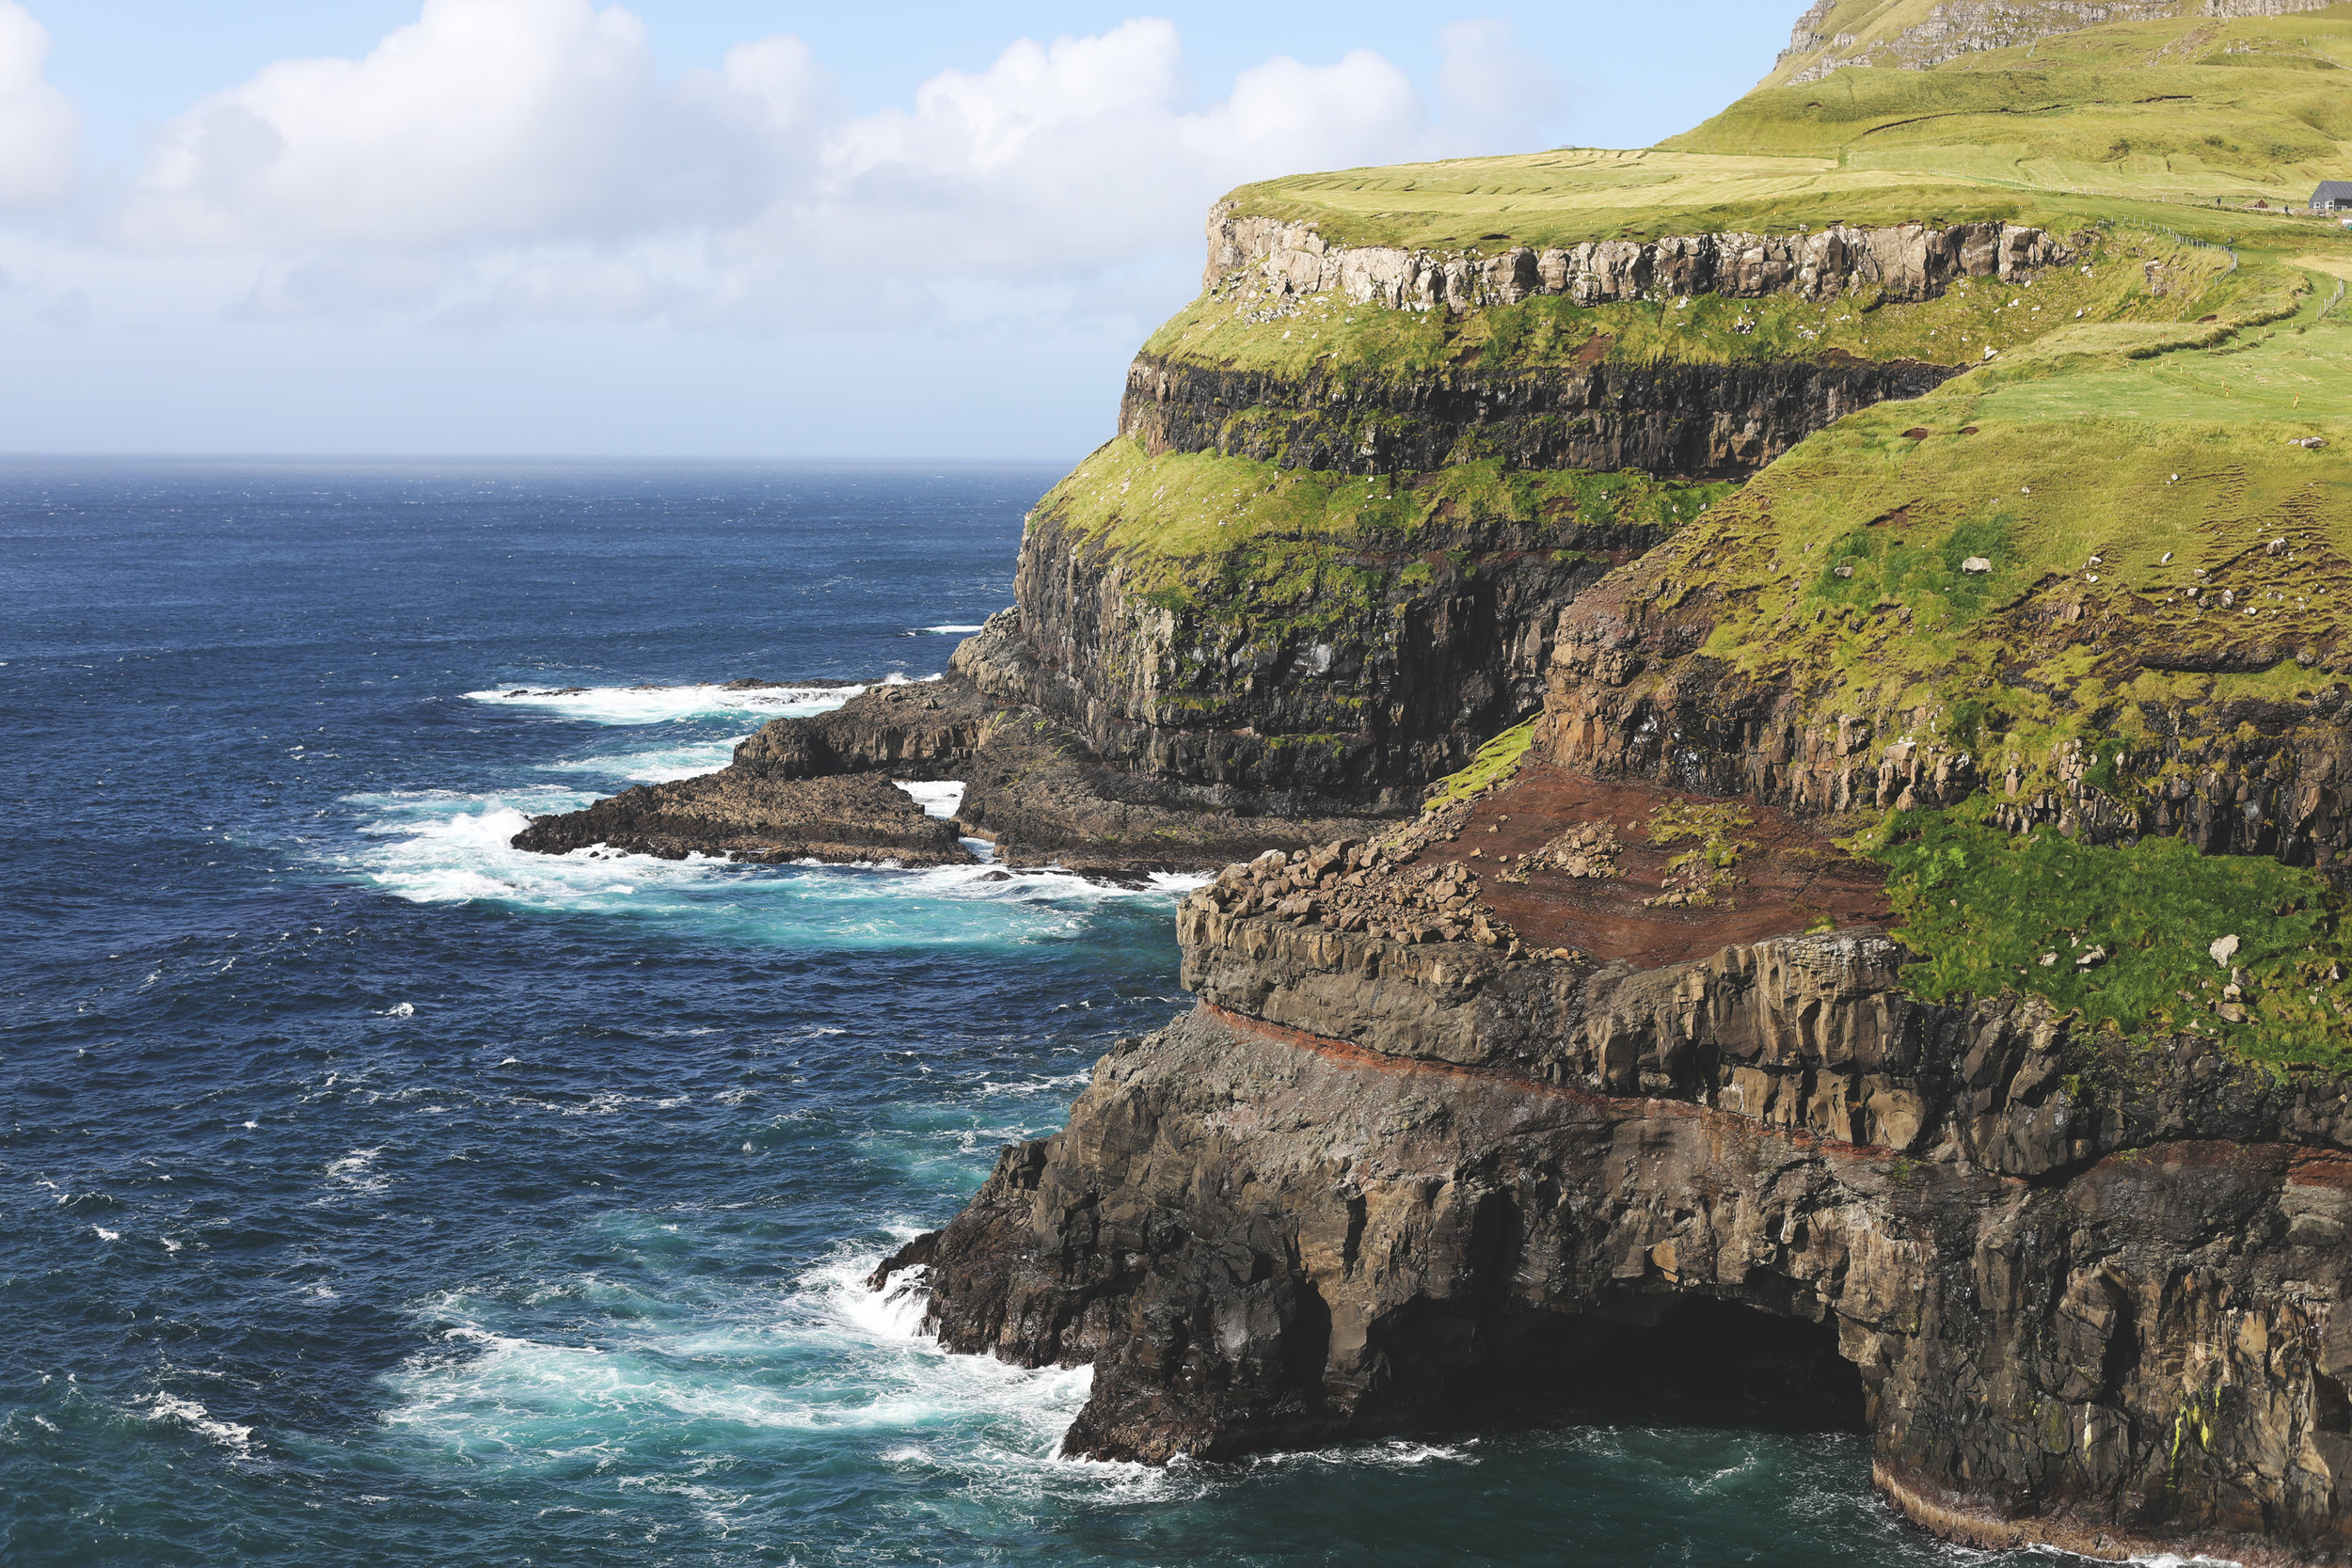 The cliffs along the village of Gasadular that will take your breath away.